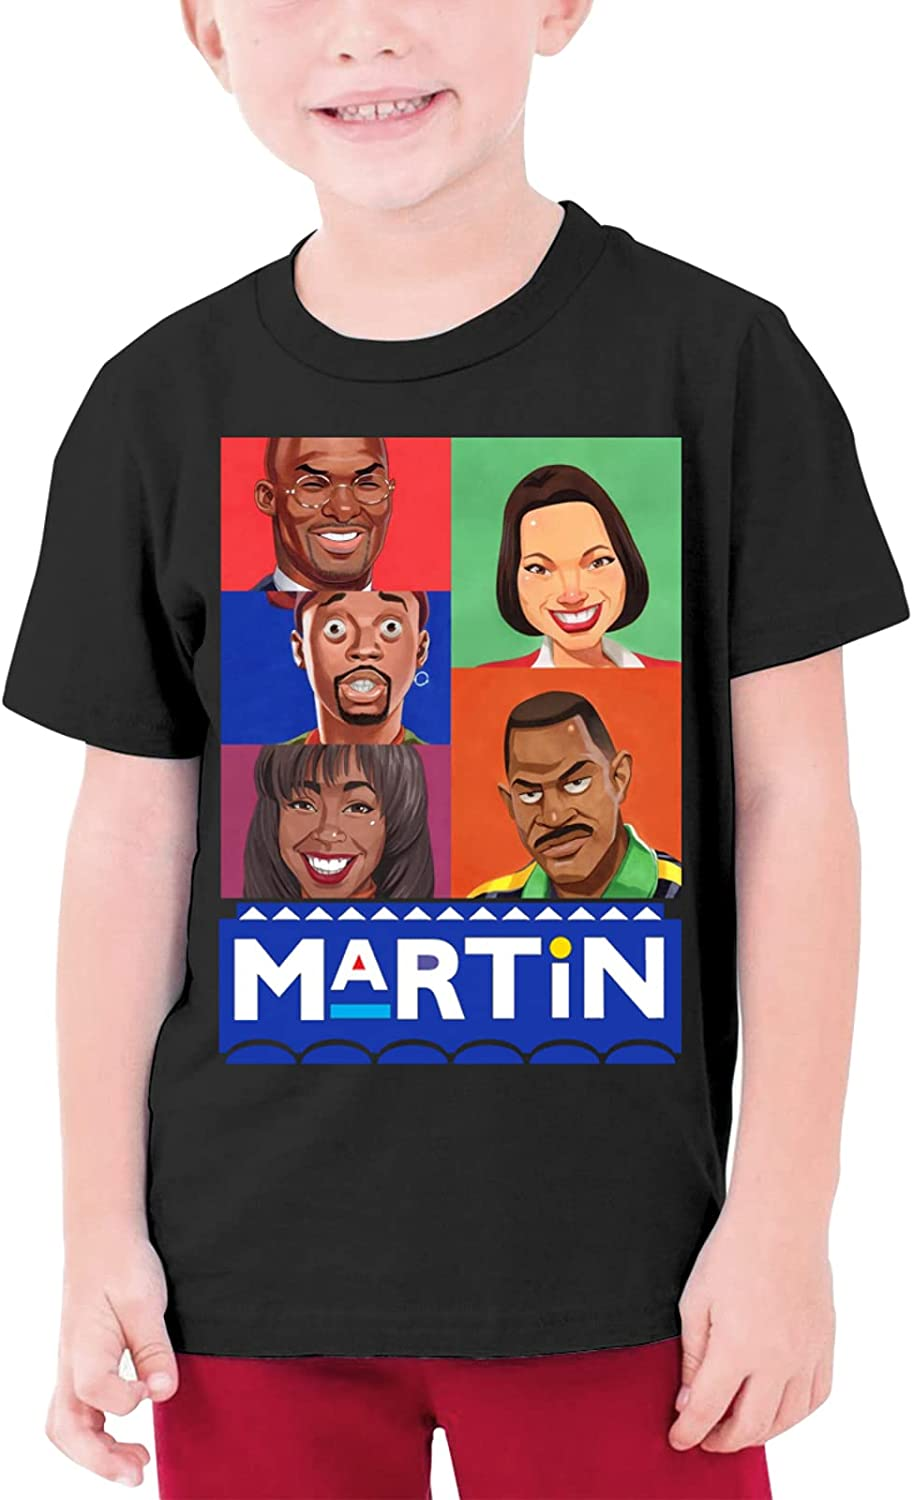 Teen Martin-Lawrence Short-Sleeved T-Shirts are Stylish and Comfortable